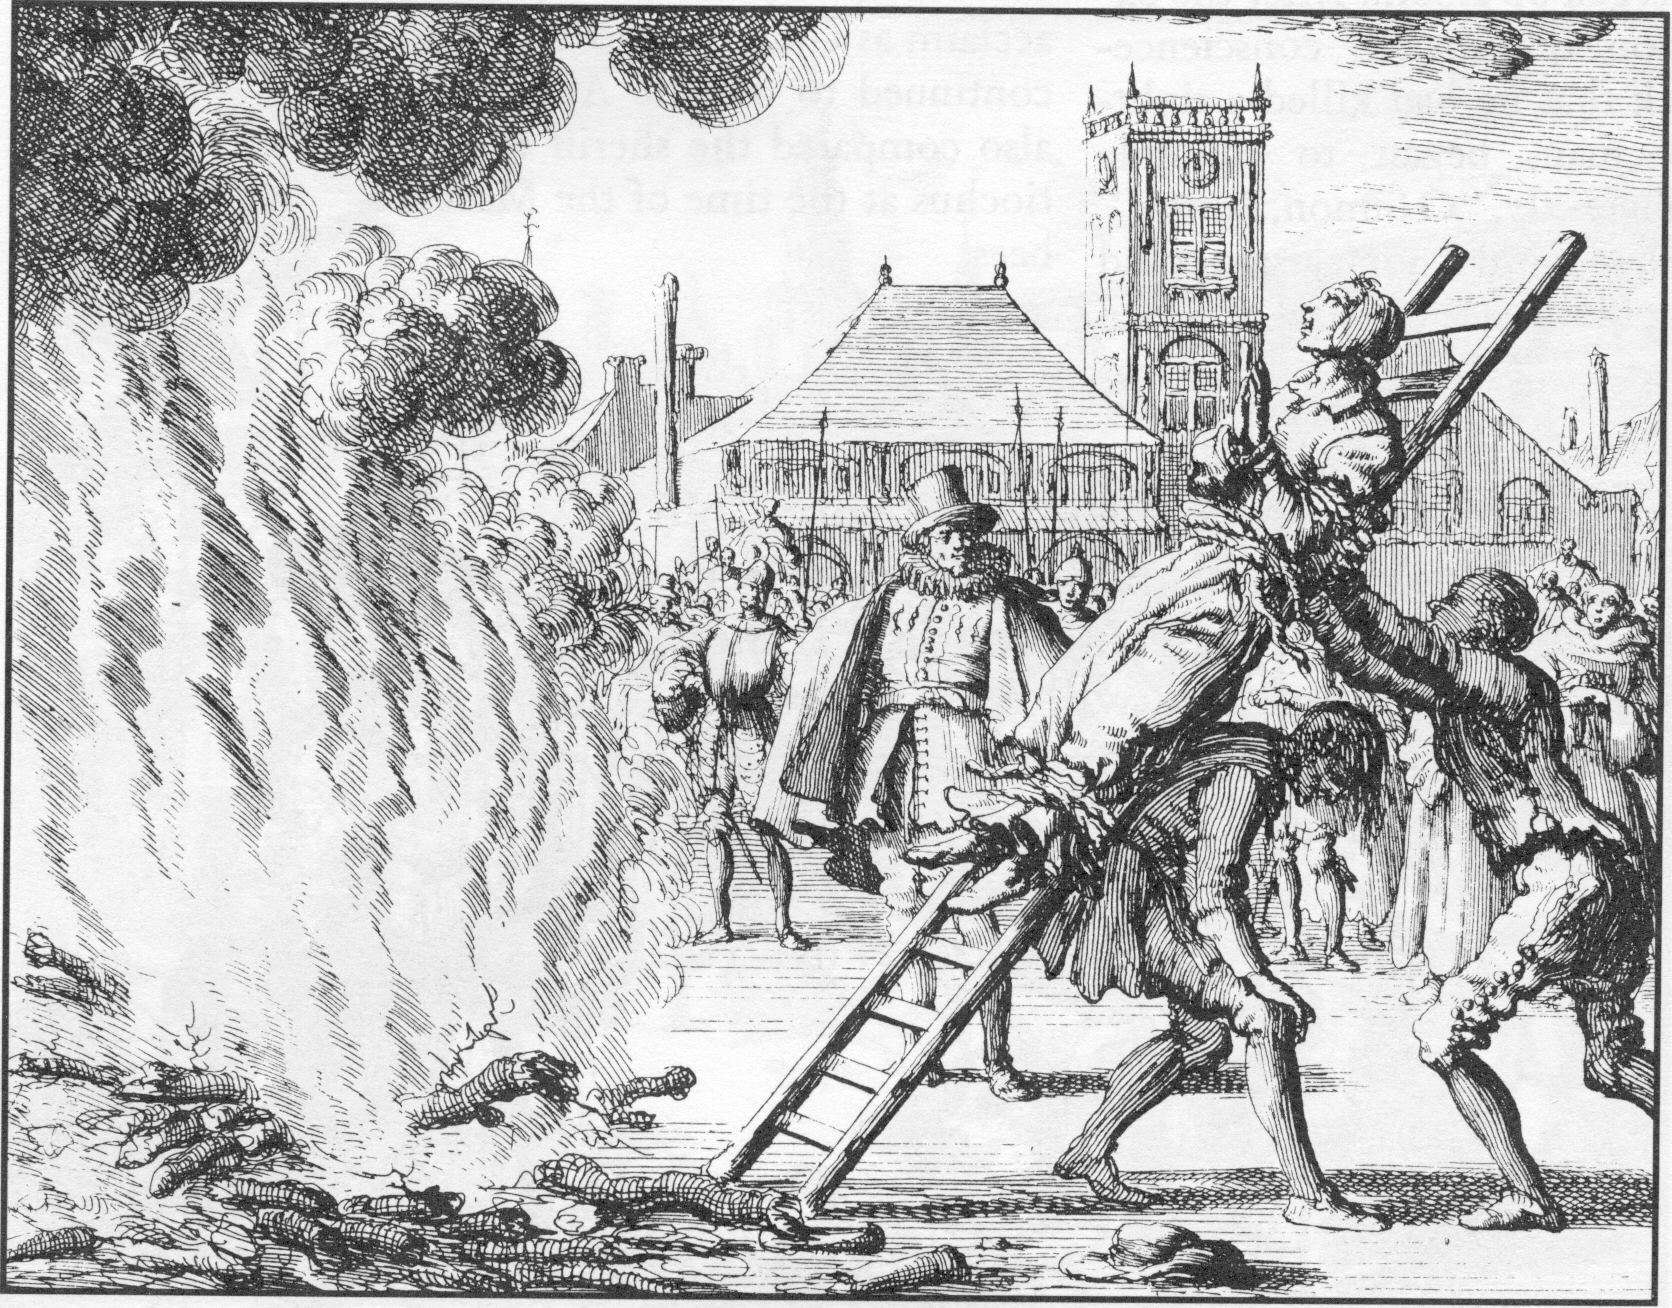 An Anabaptist being martyred in 16th century Europe